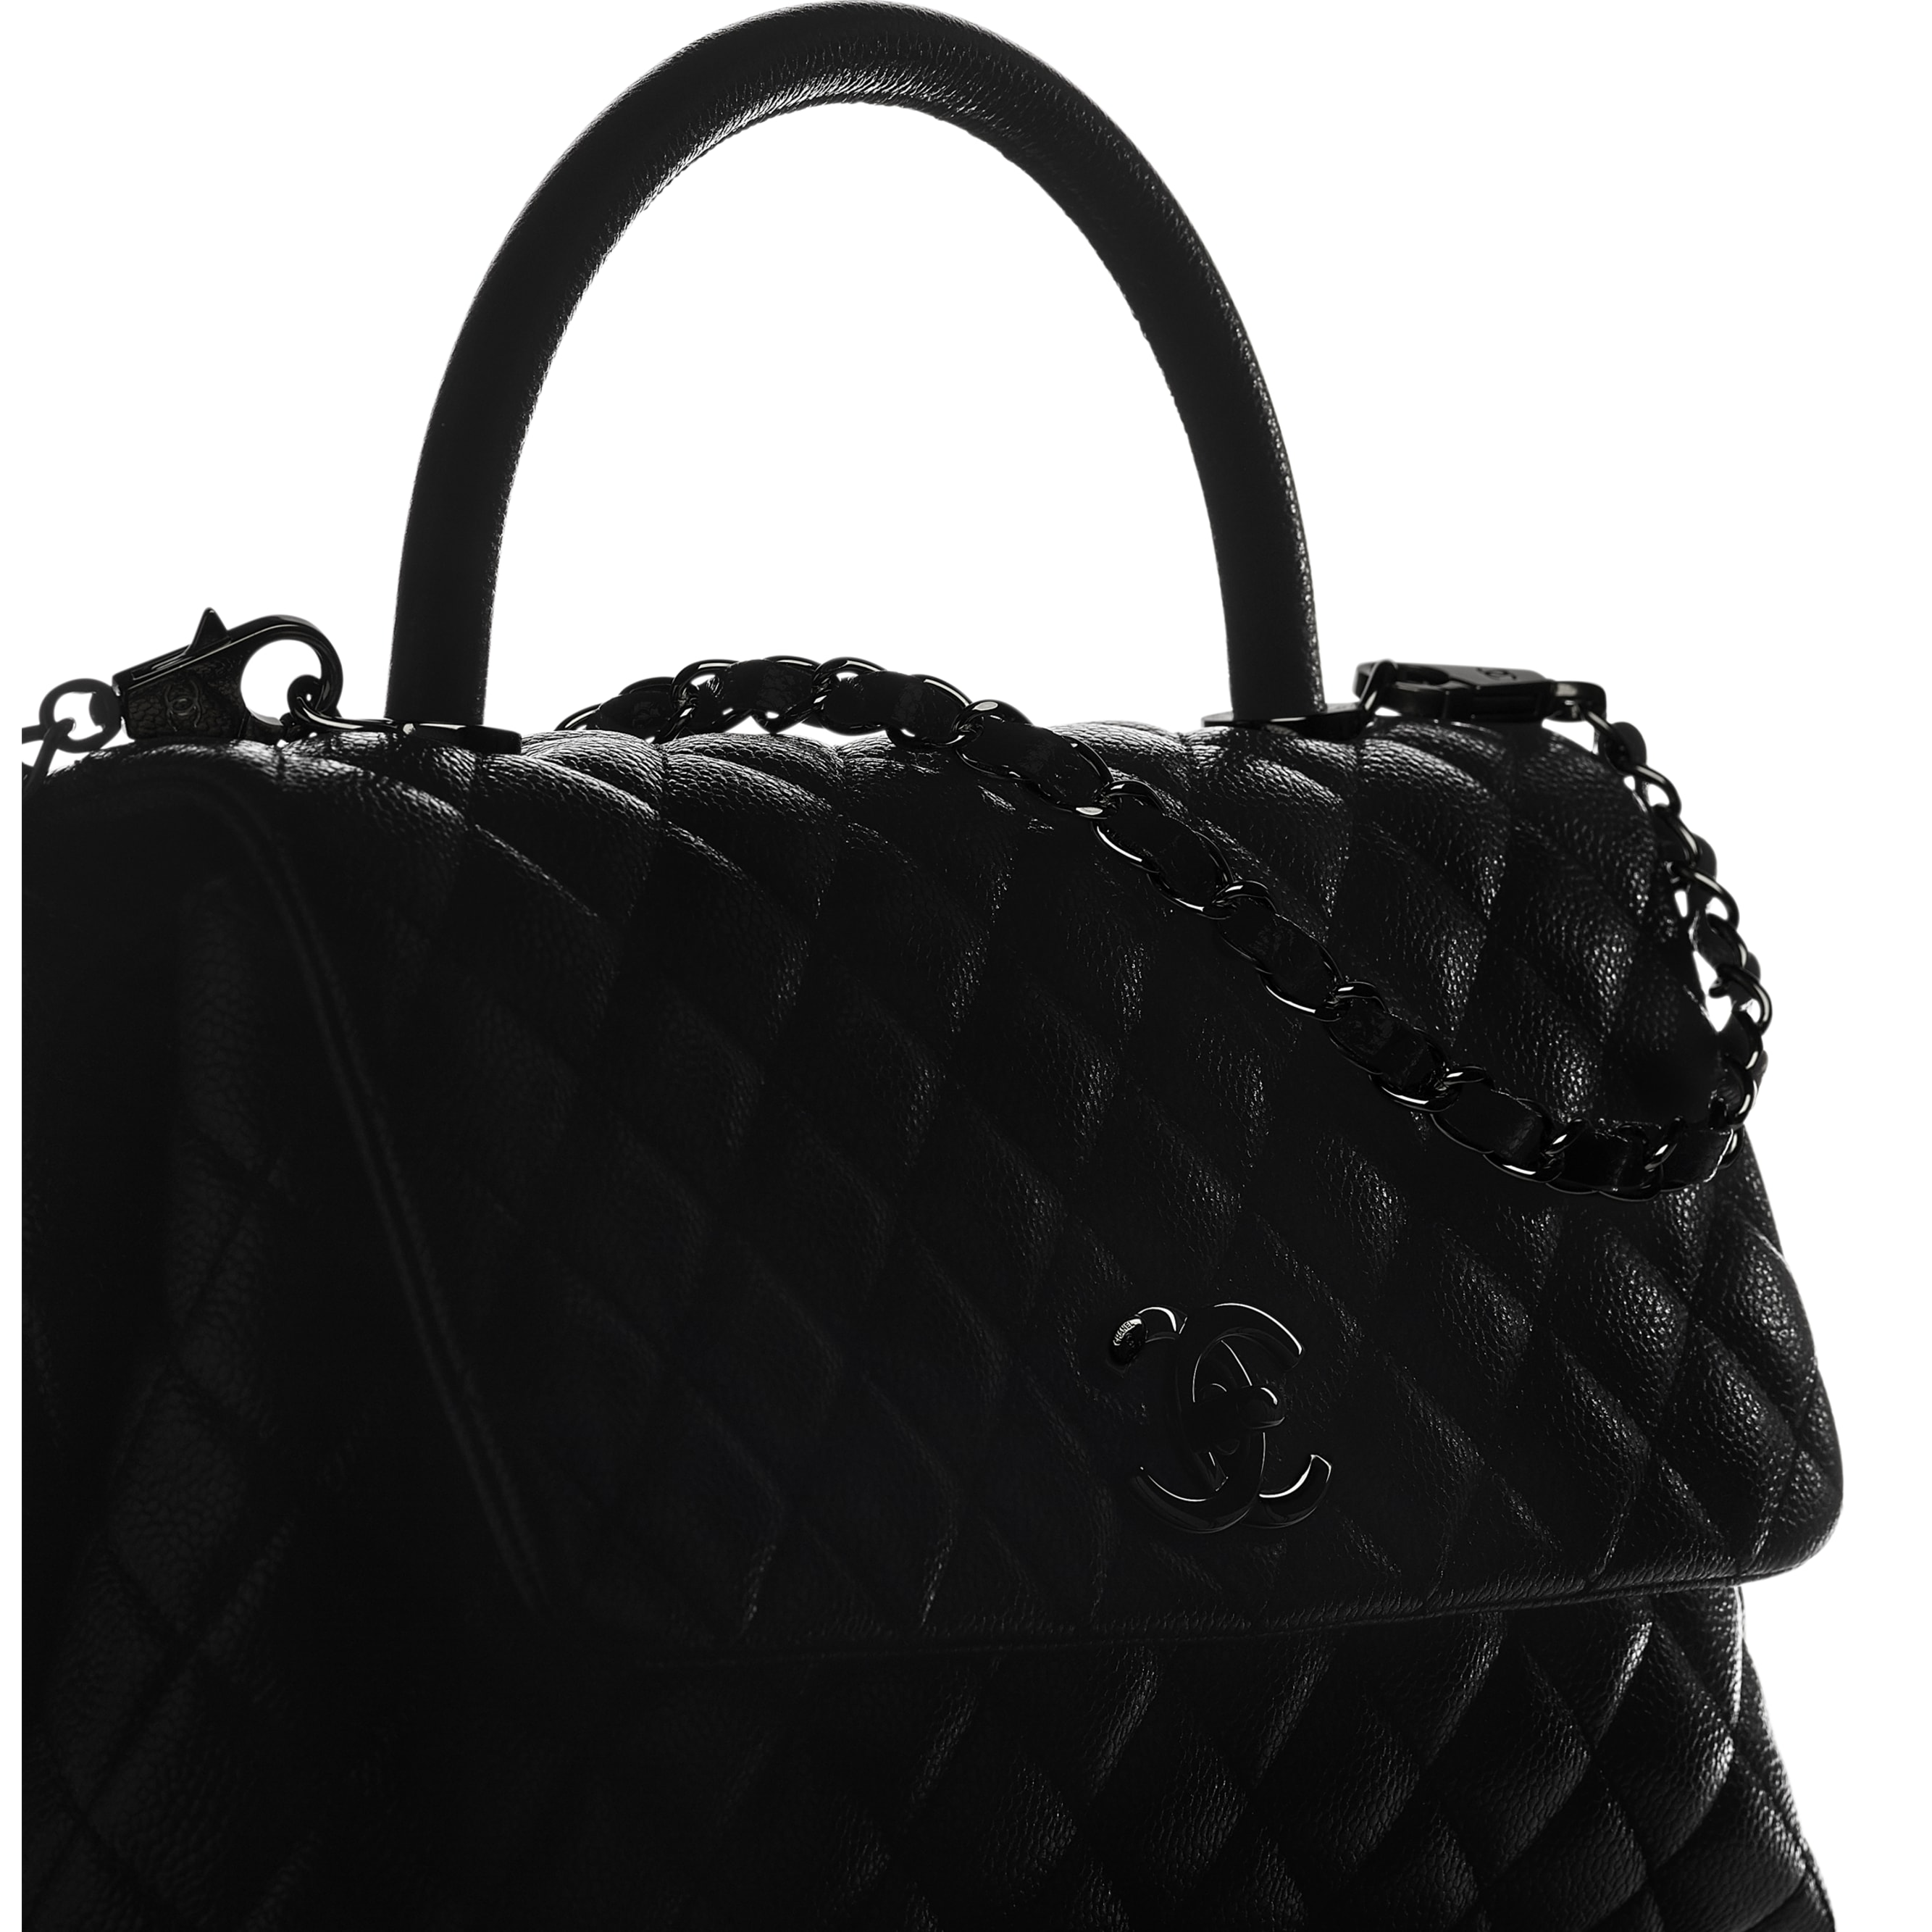 Flap Bag With Top Handle - Black - Grained Calfskin & Black Metal - CHANEL - Extra view - see standard sized version